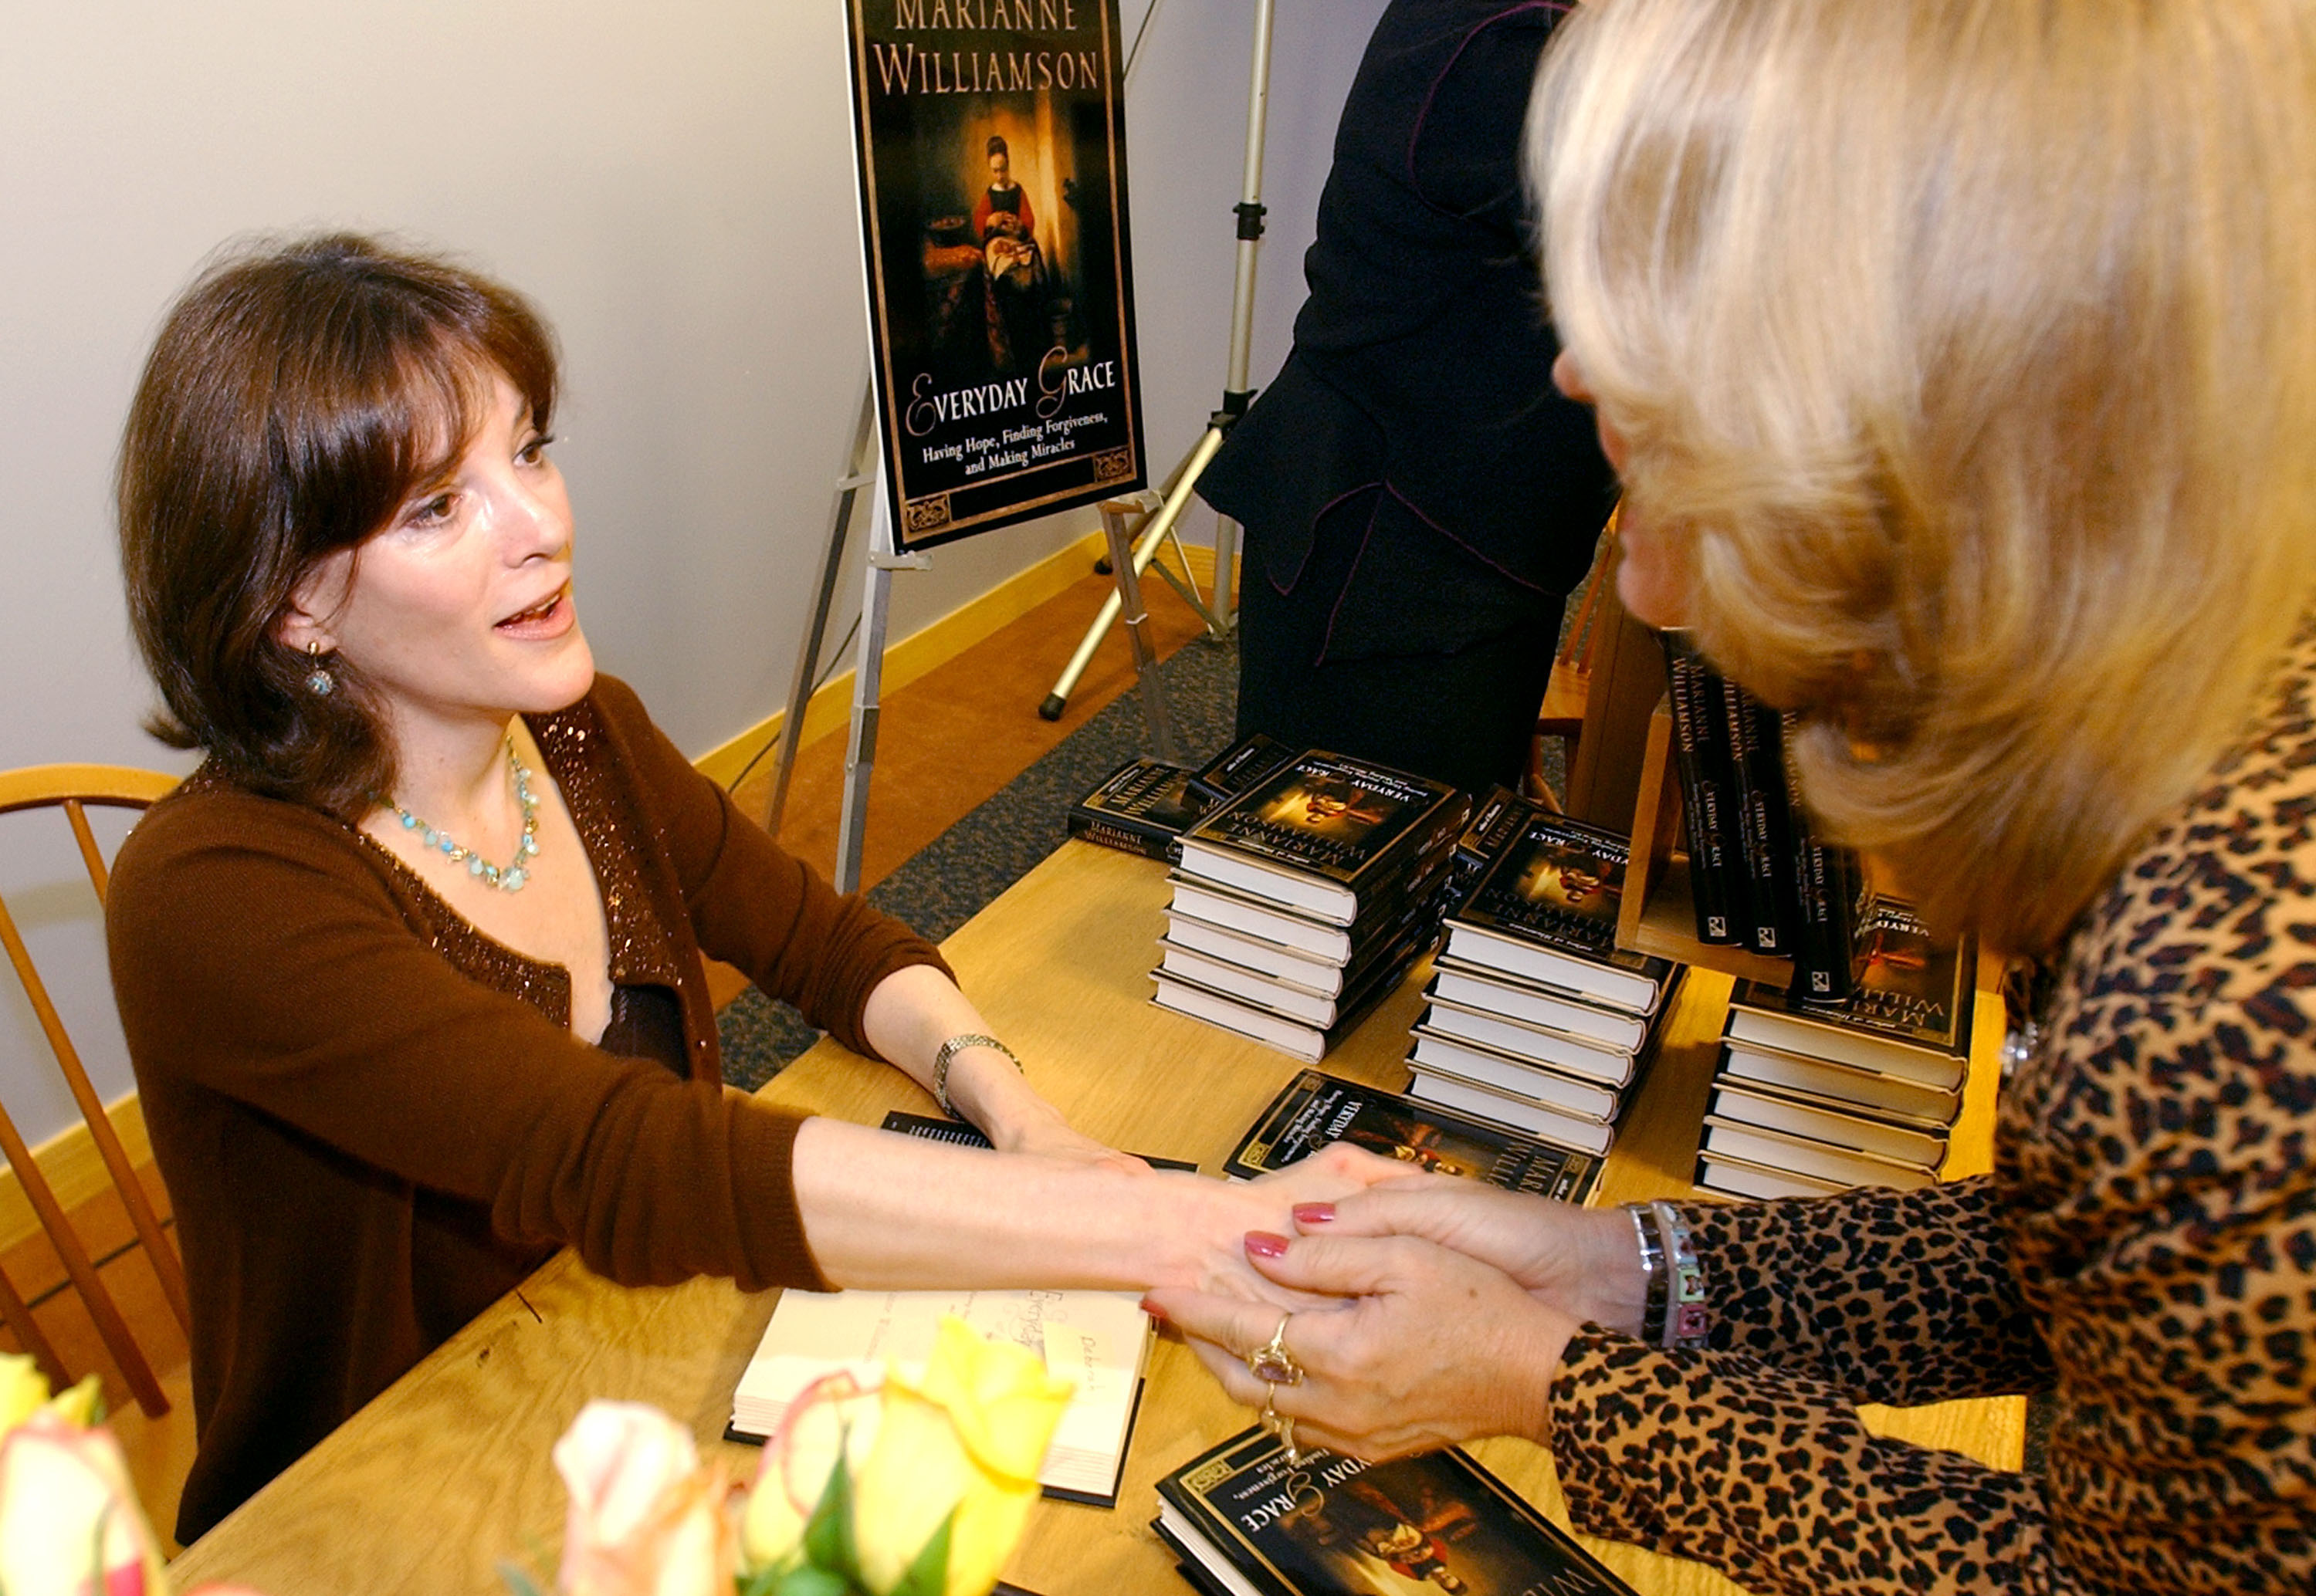 Marianne Williamson signs books and meets a fan in 2002.